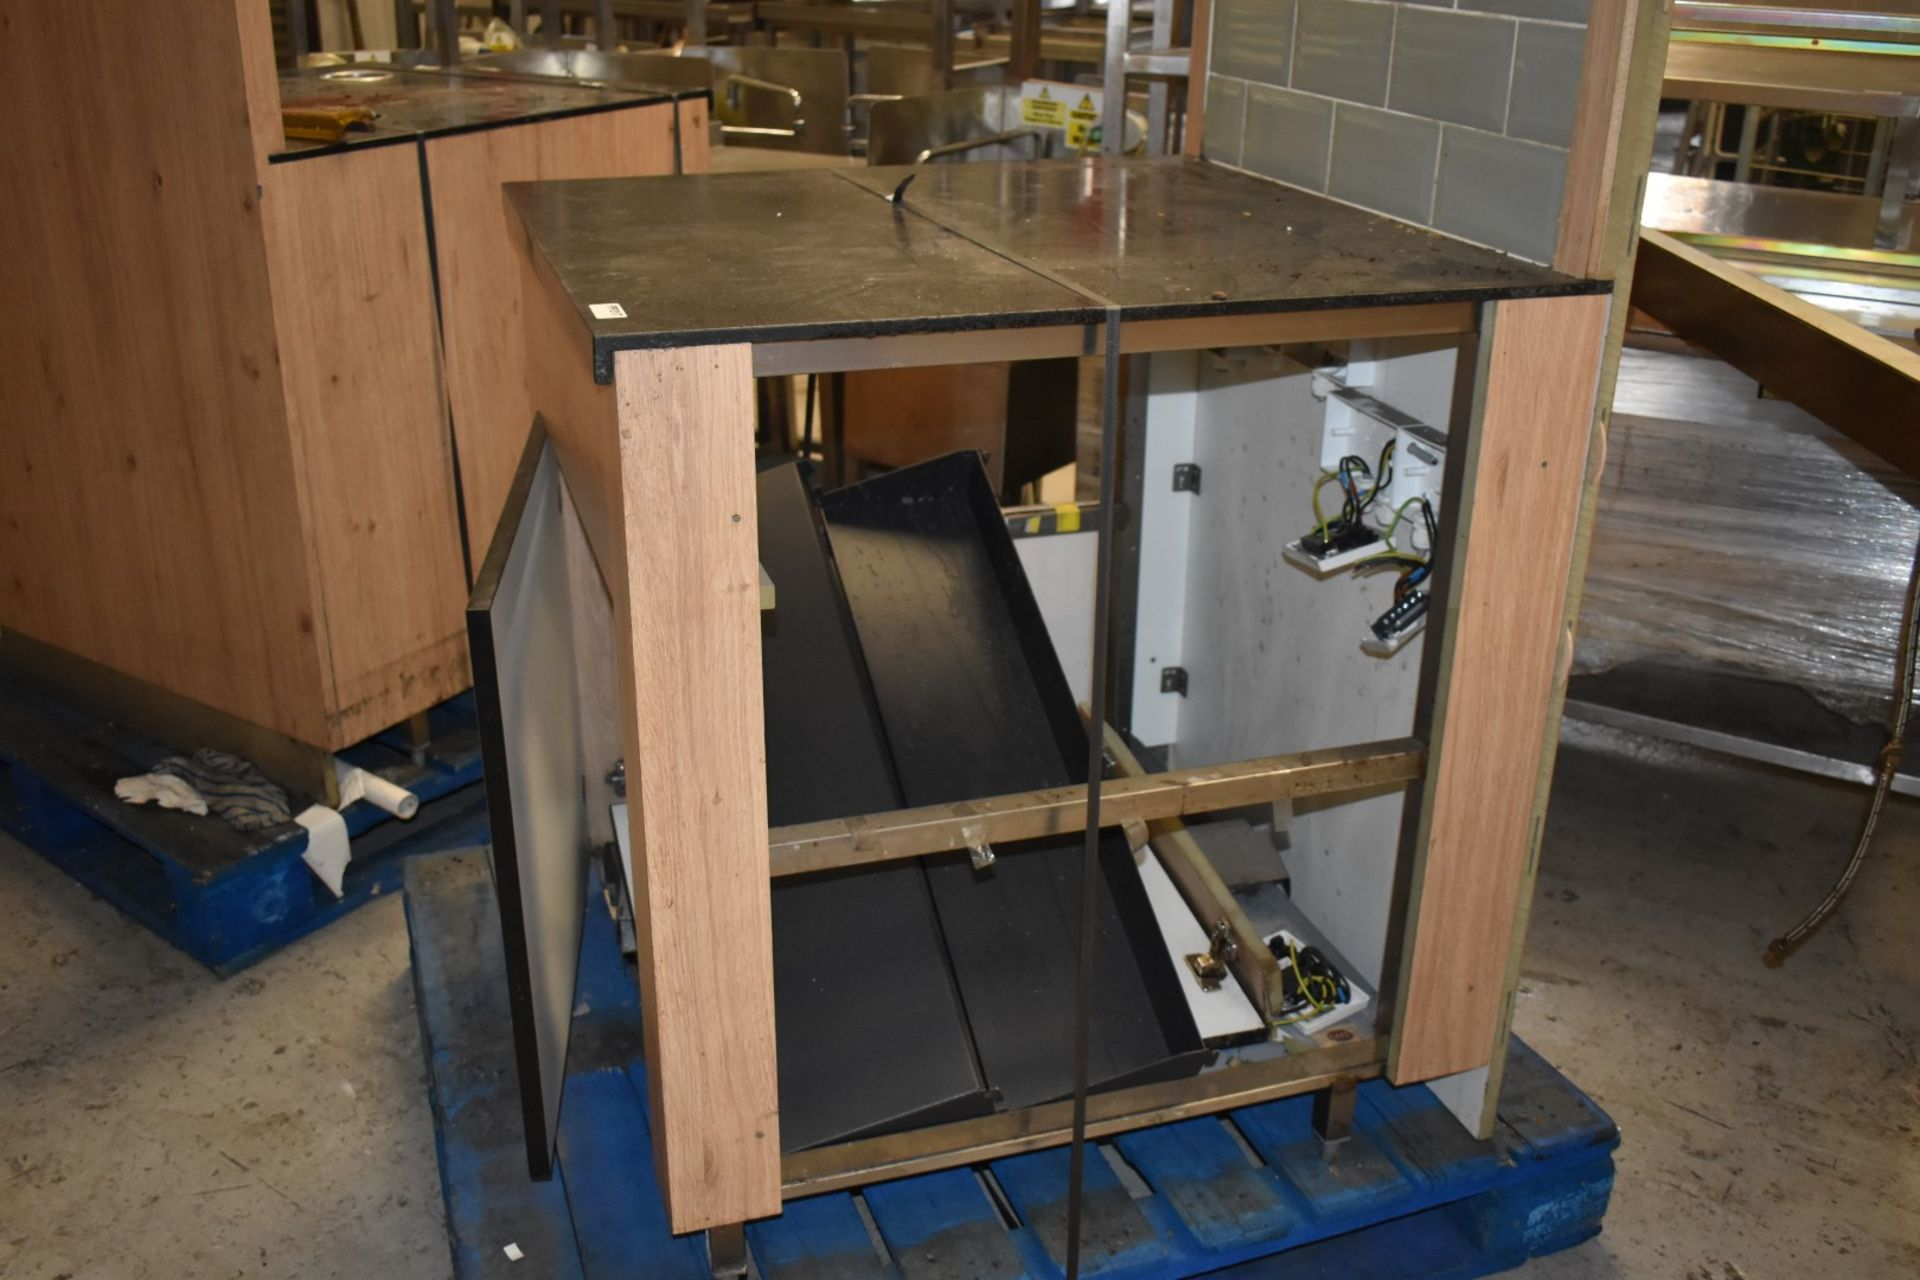 1 x Modern Coffee Machine Stand With Undercabinet Storage and Tiled Back - Size H91 x W80 x D87 - Image 5 of 7